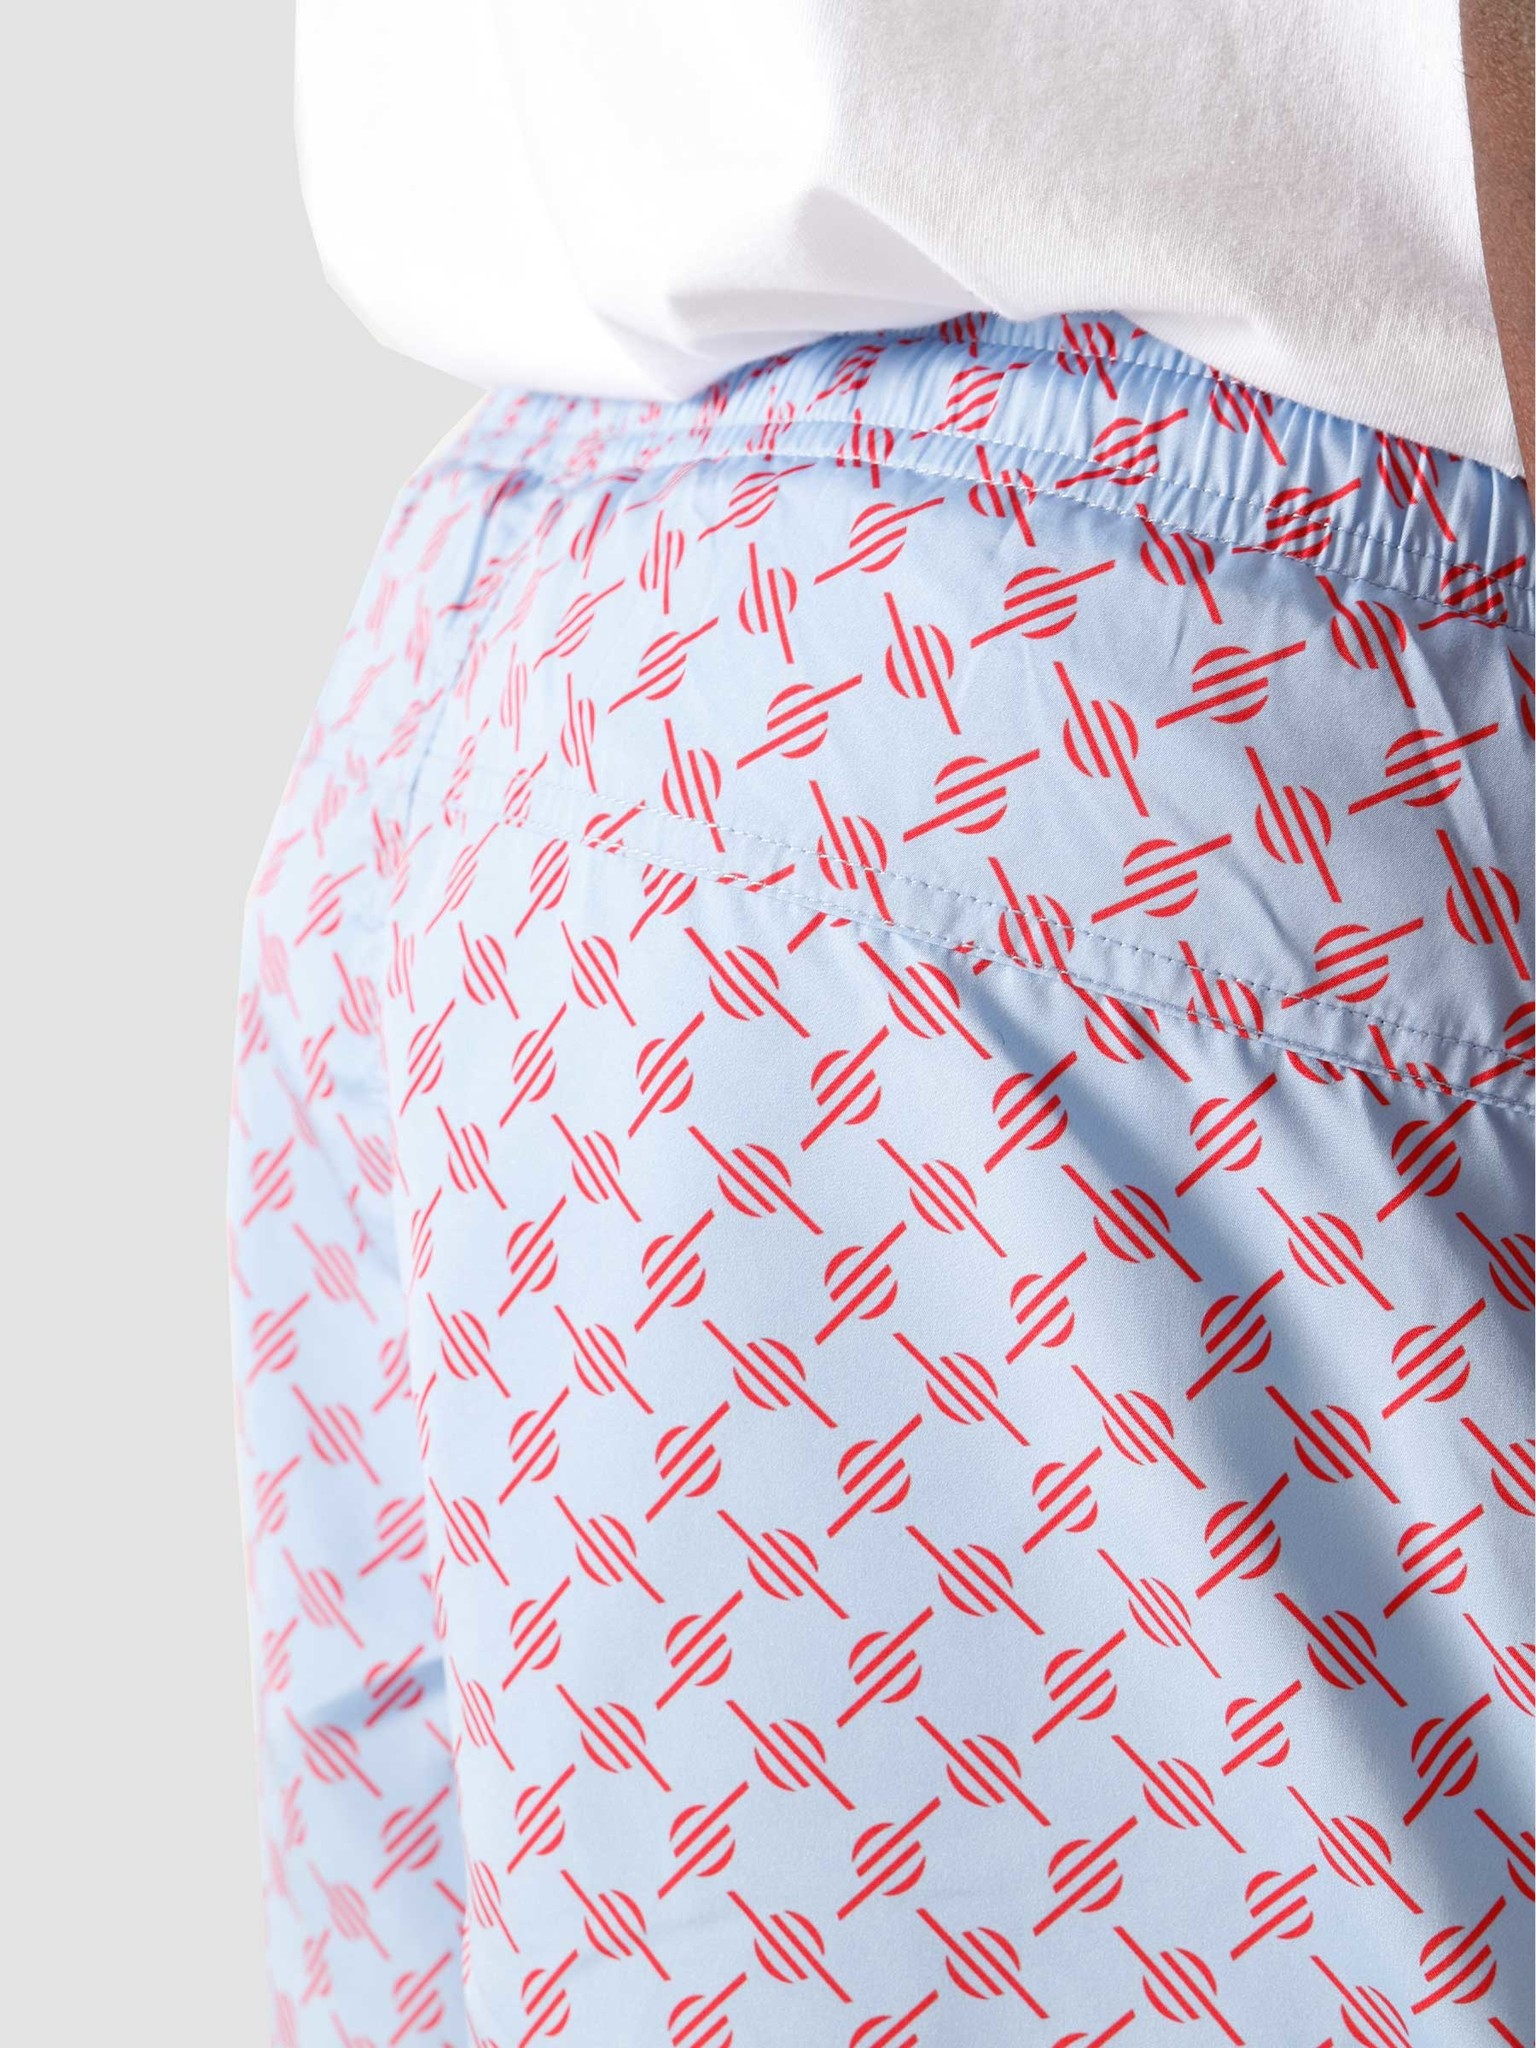 Daily Paper Daily Paper Kali 2 Classic Swimshort Blue Red Monogram 2111147